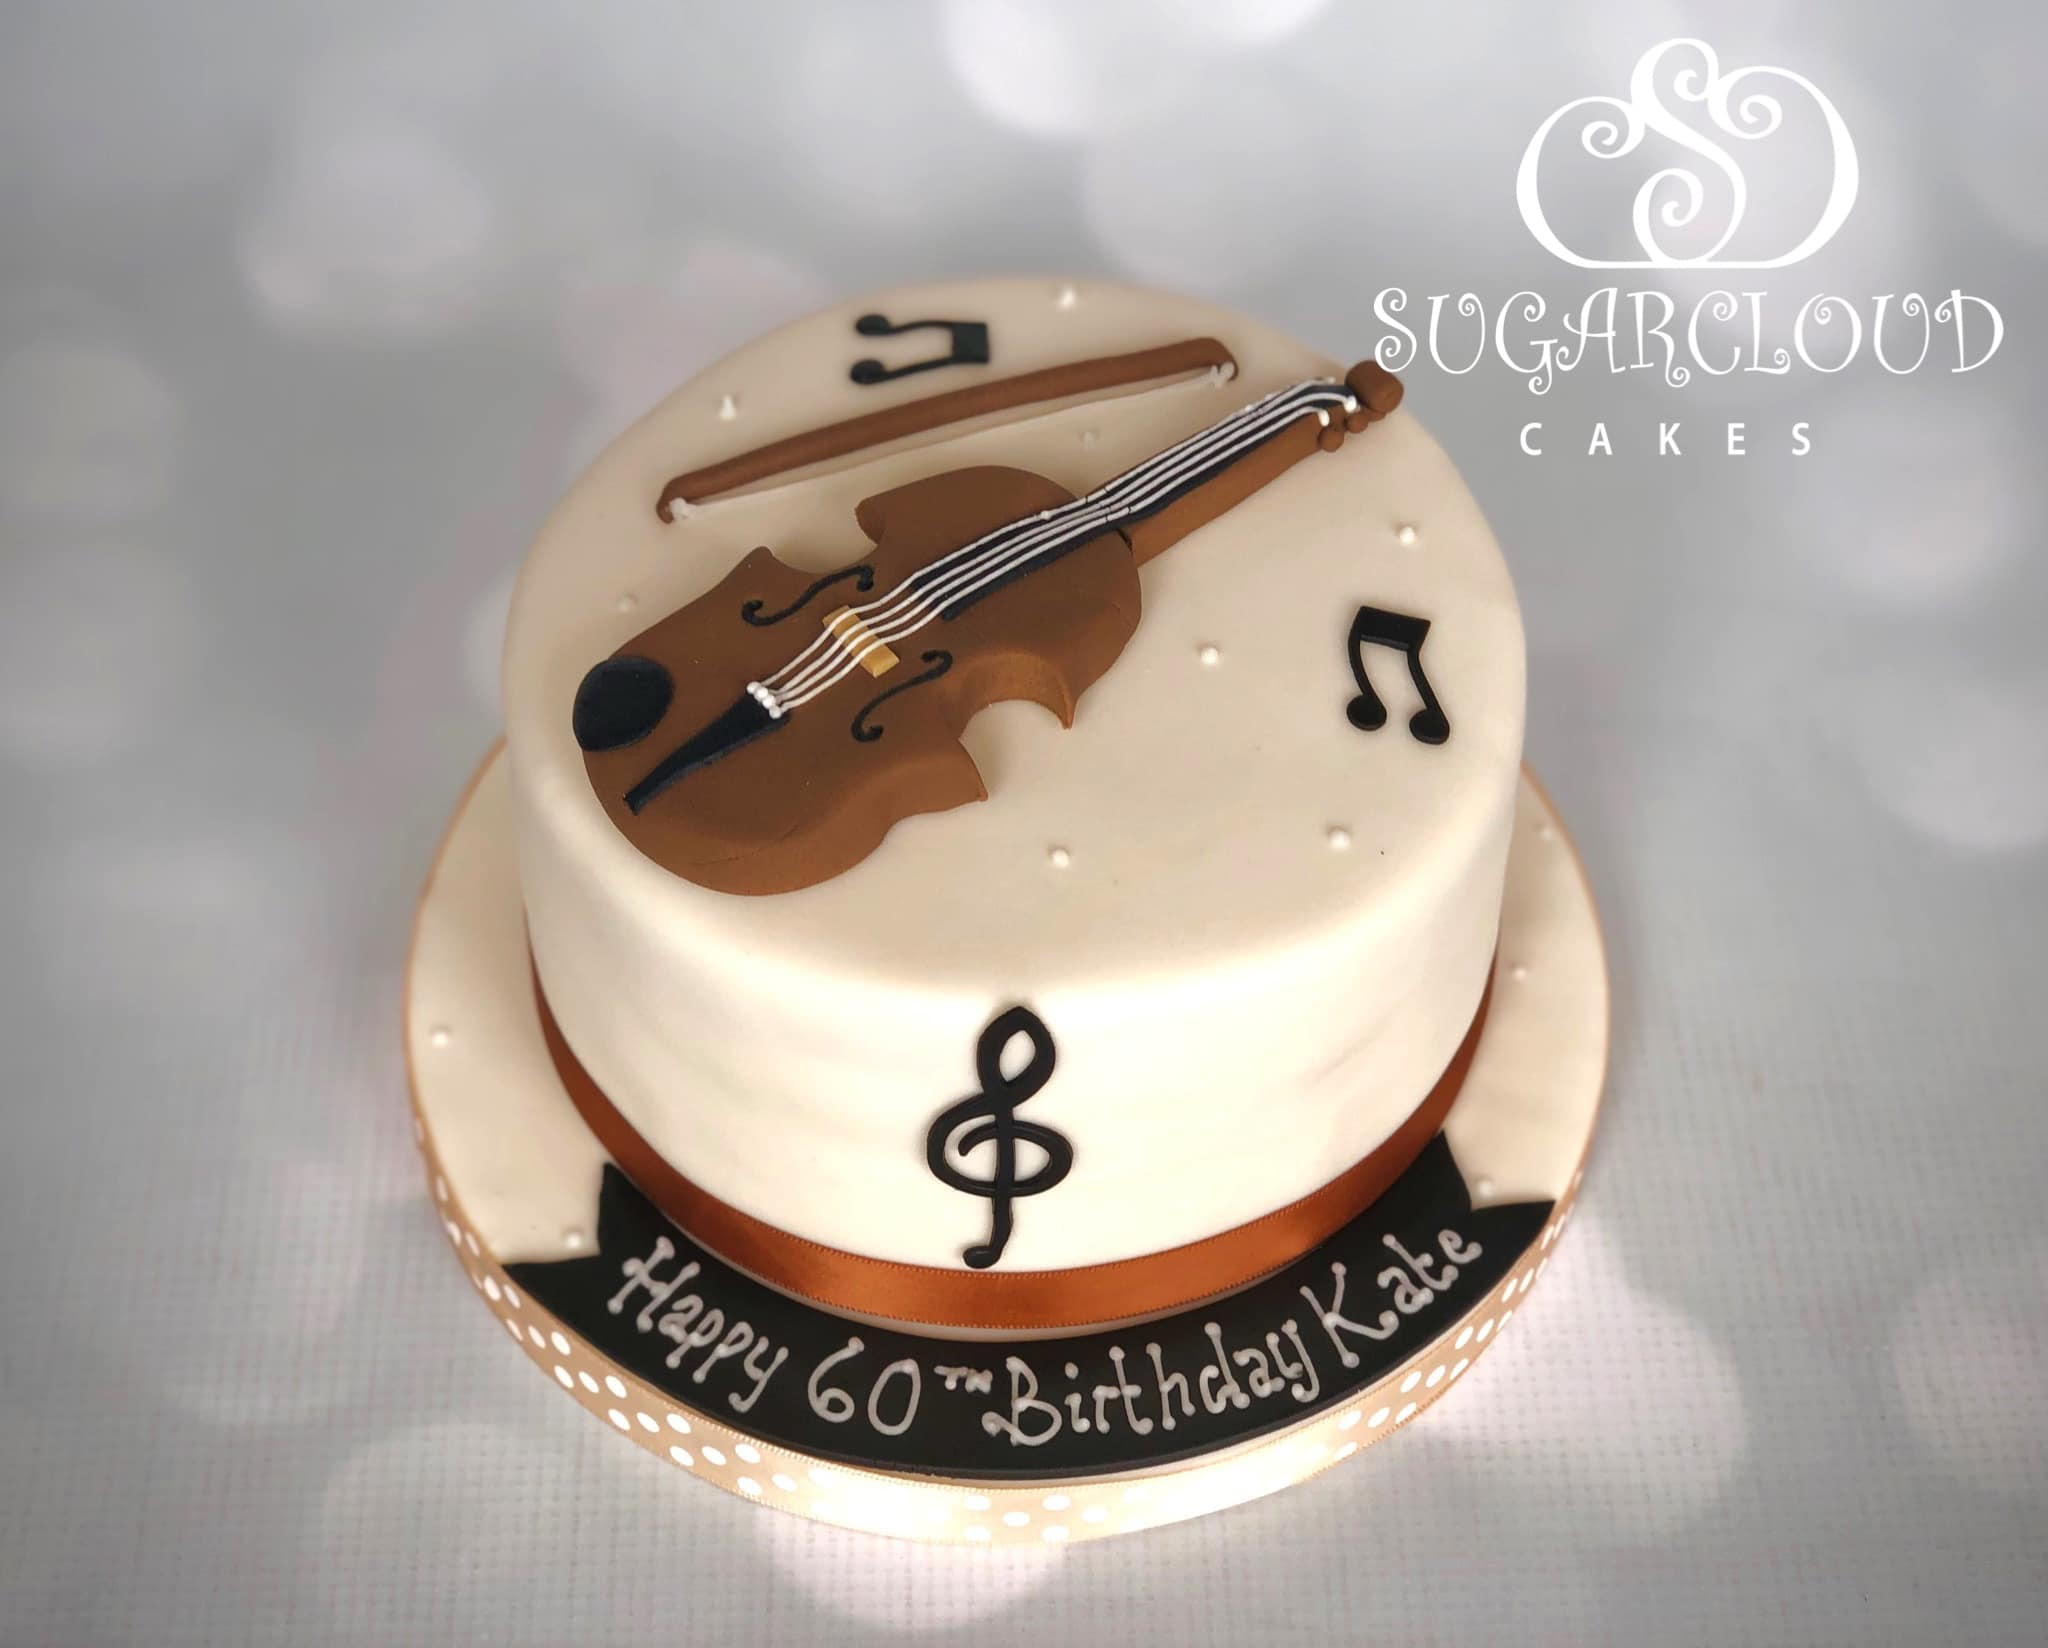 A 60th Birthday Cake for a Keen Violinist, Nantwich